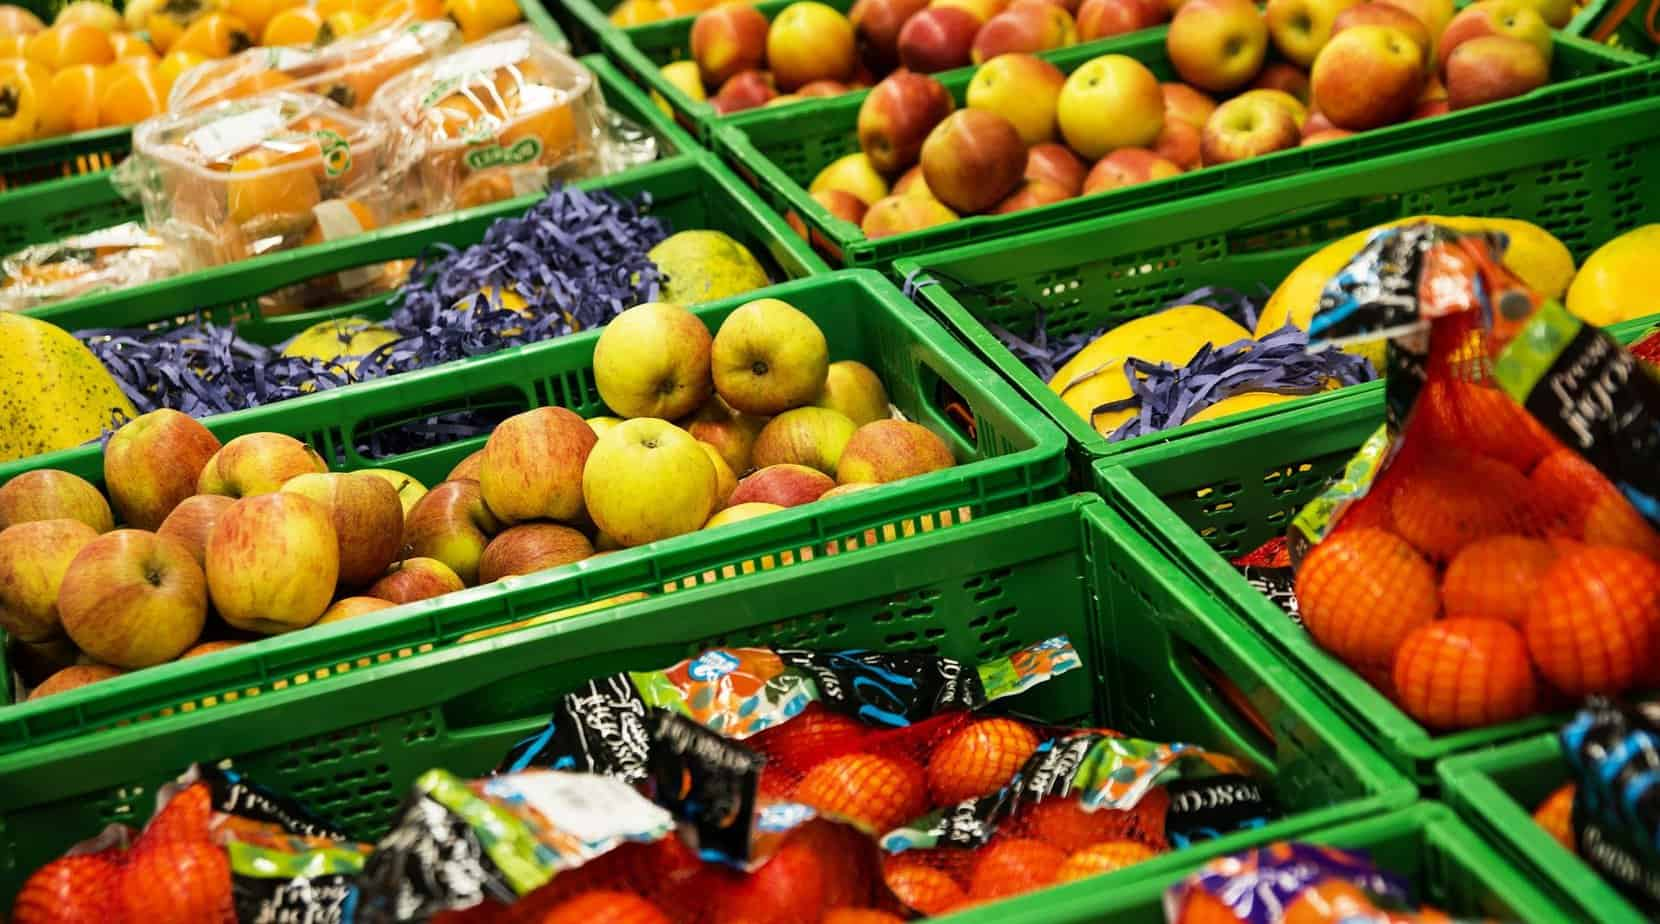 Do Grocery Stores Have Fruit Flies?